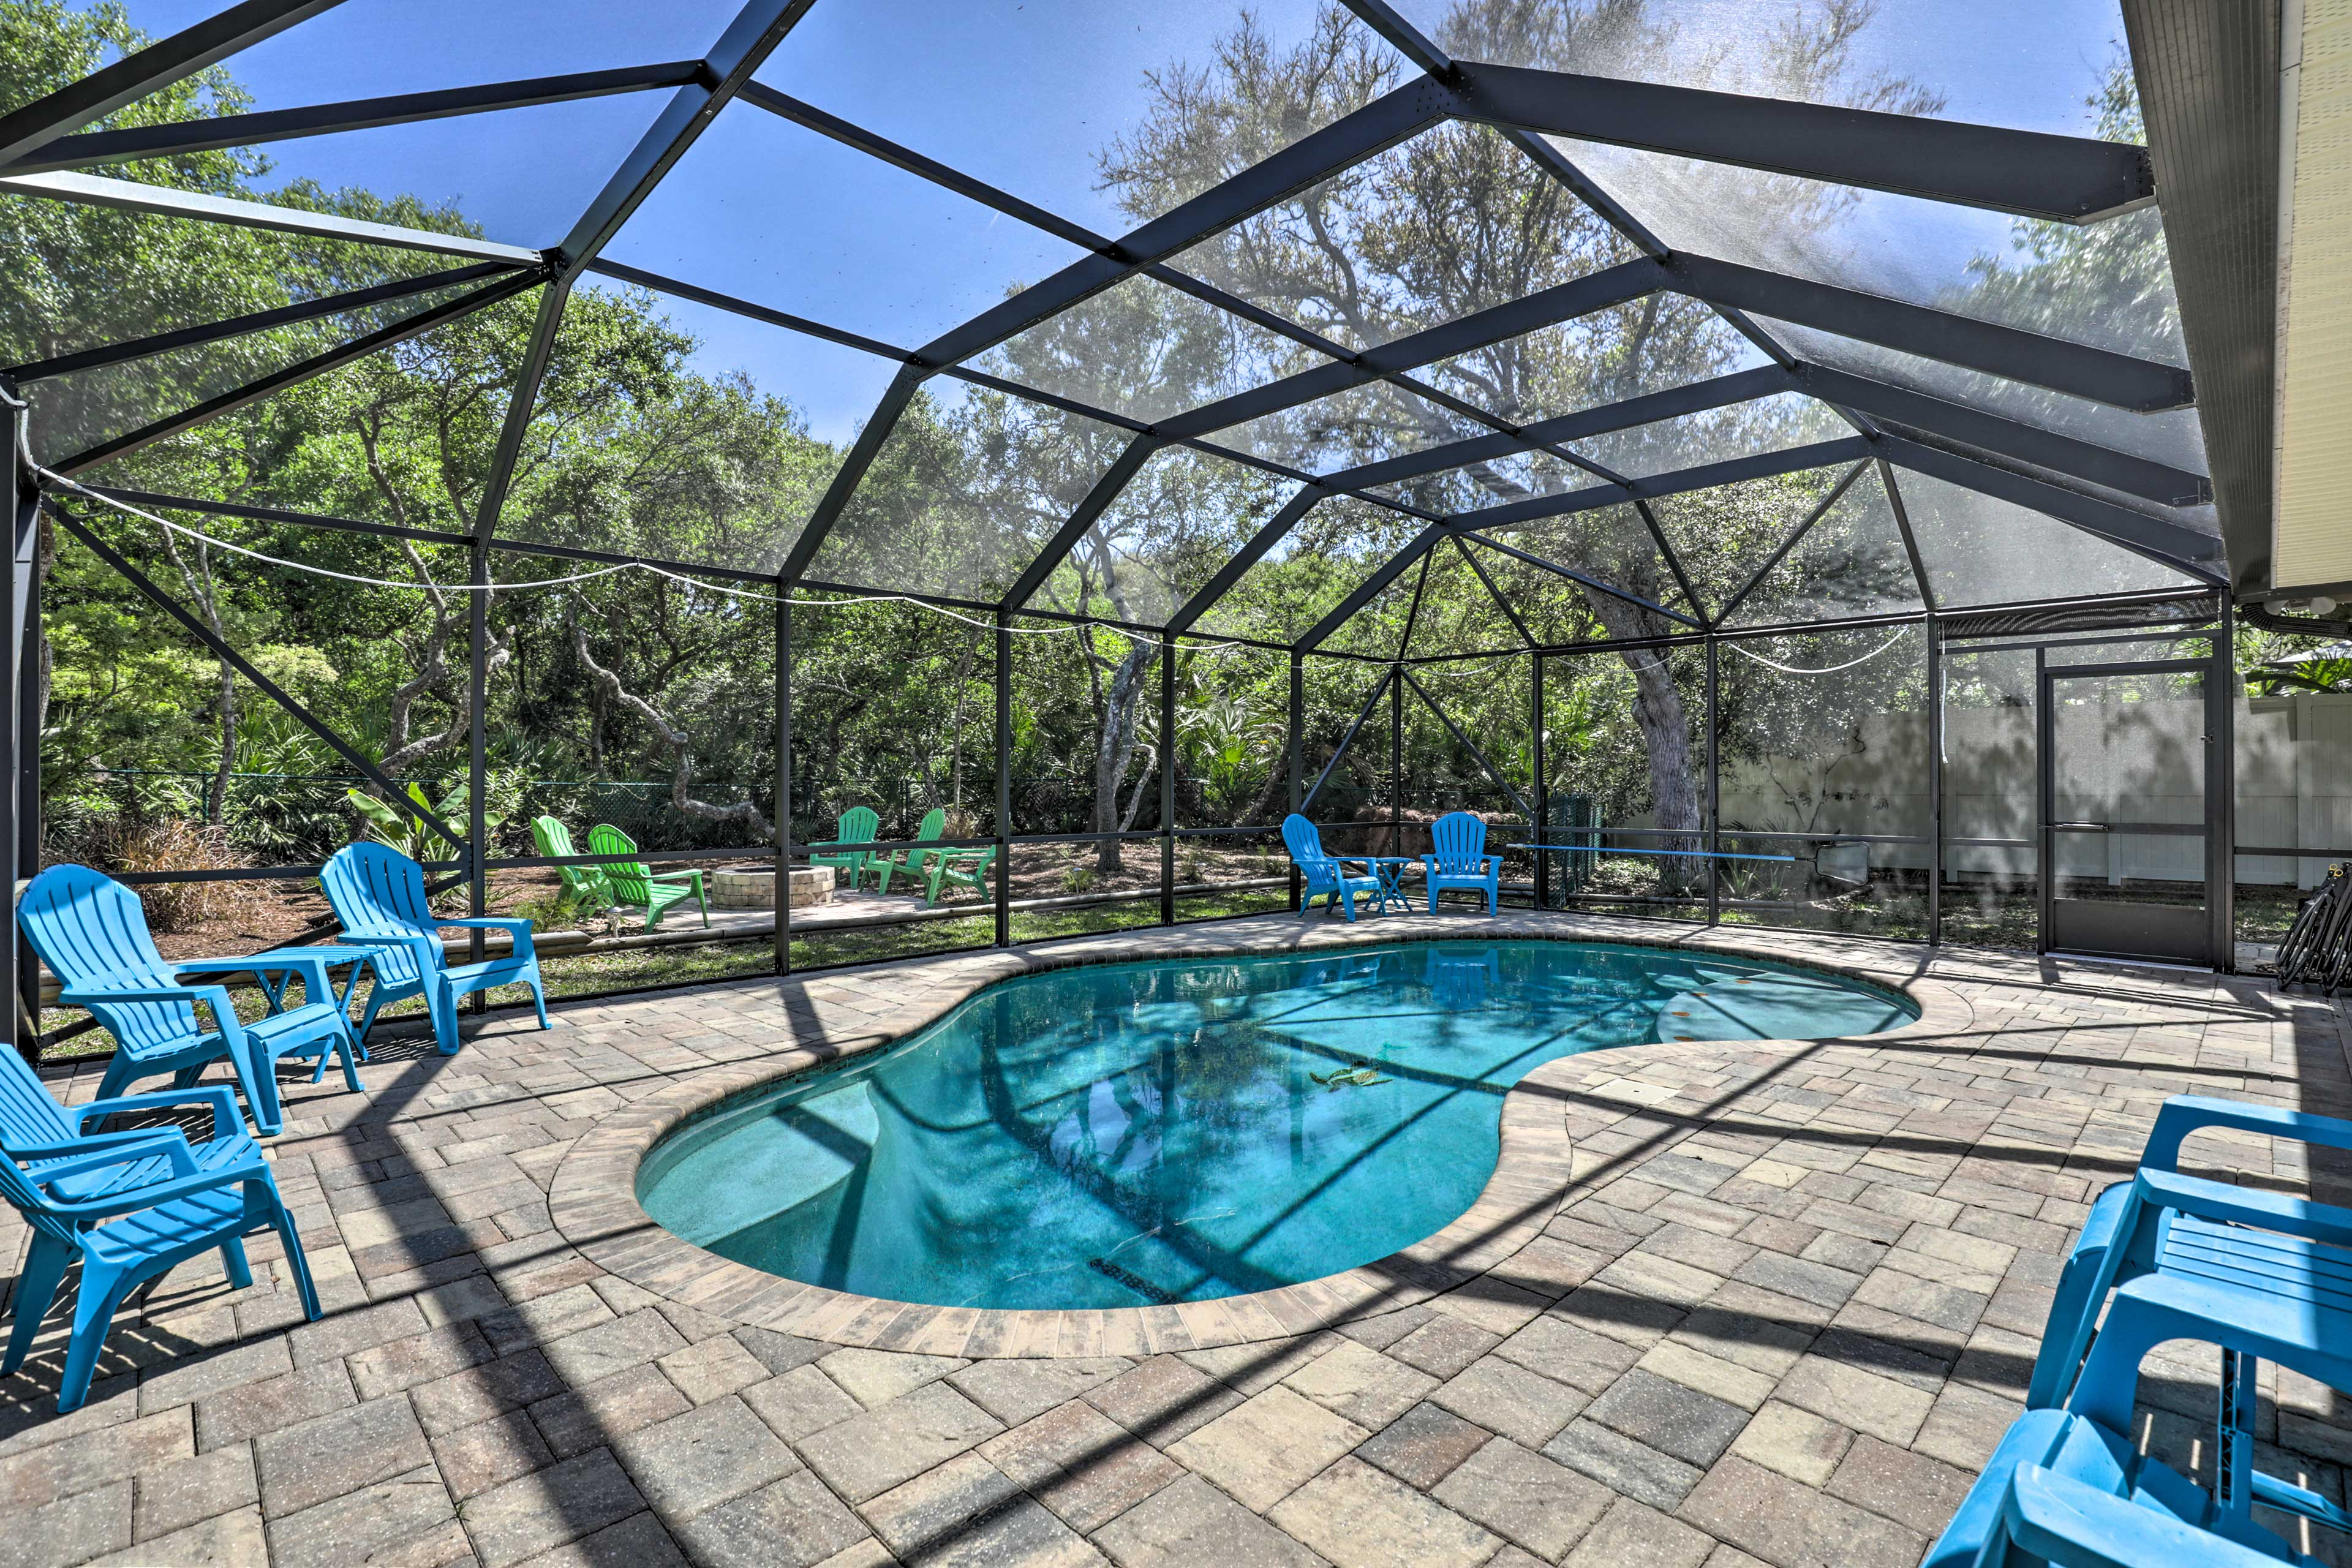 Soak up some sun on the pool deck.